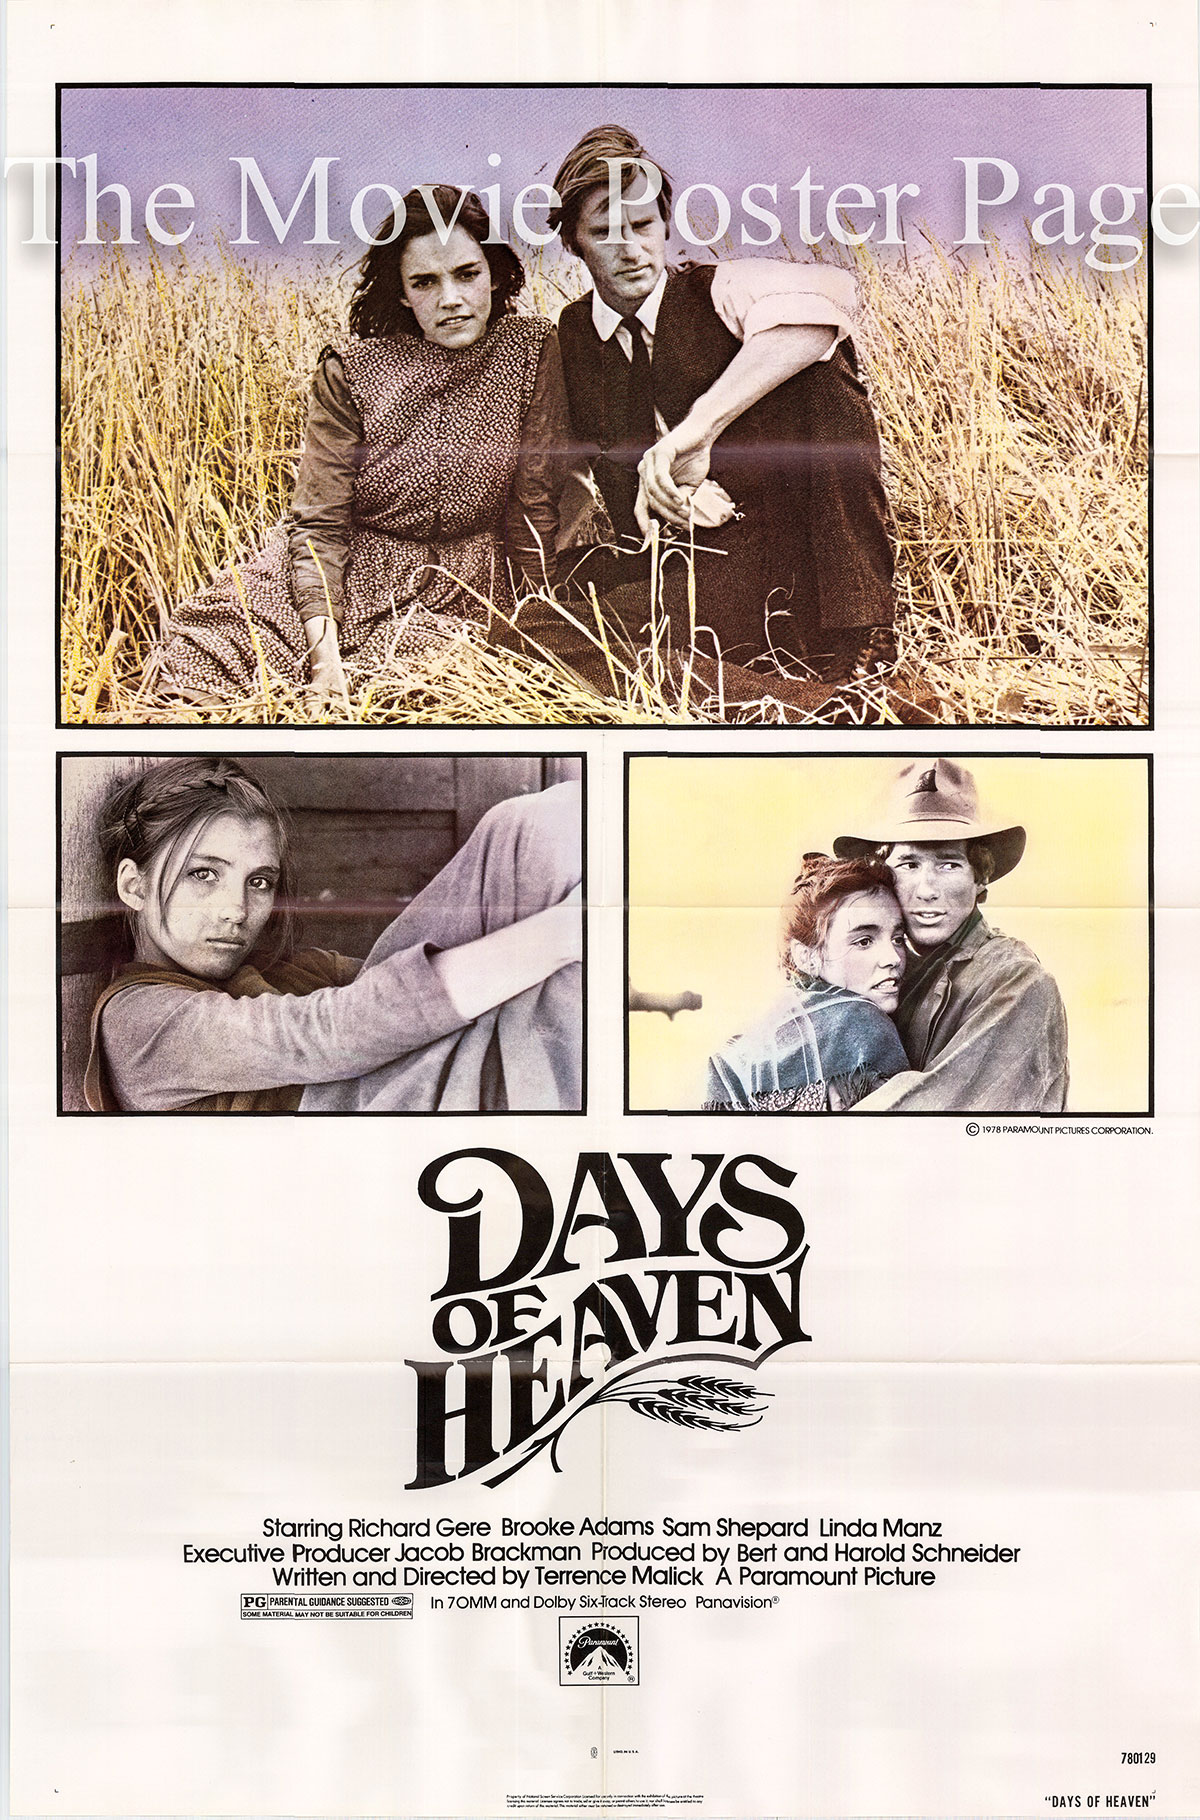 Pictured is a US one-sheet poster for the 1978 Terence Malick film Days of Heaven starring Richard Gere as Bill.